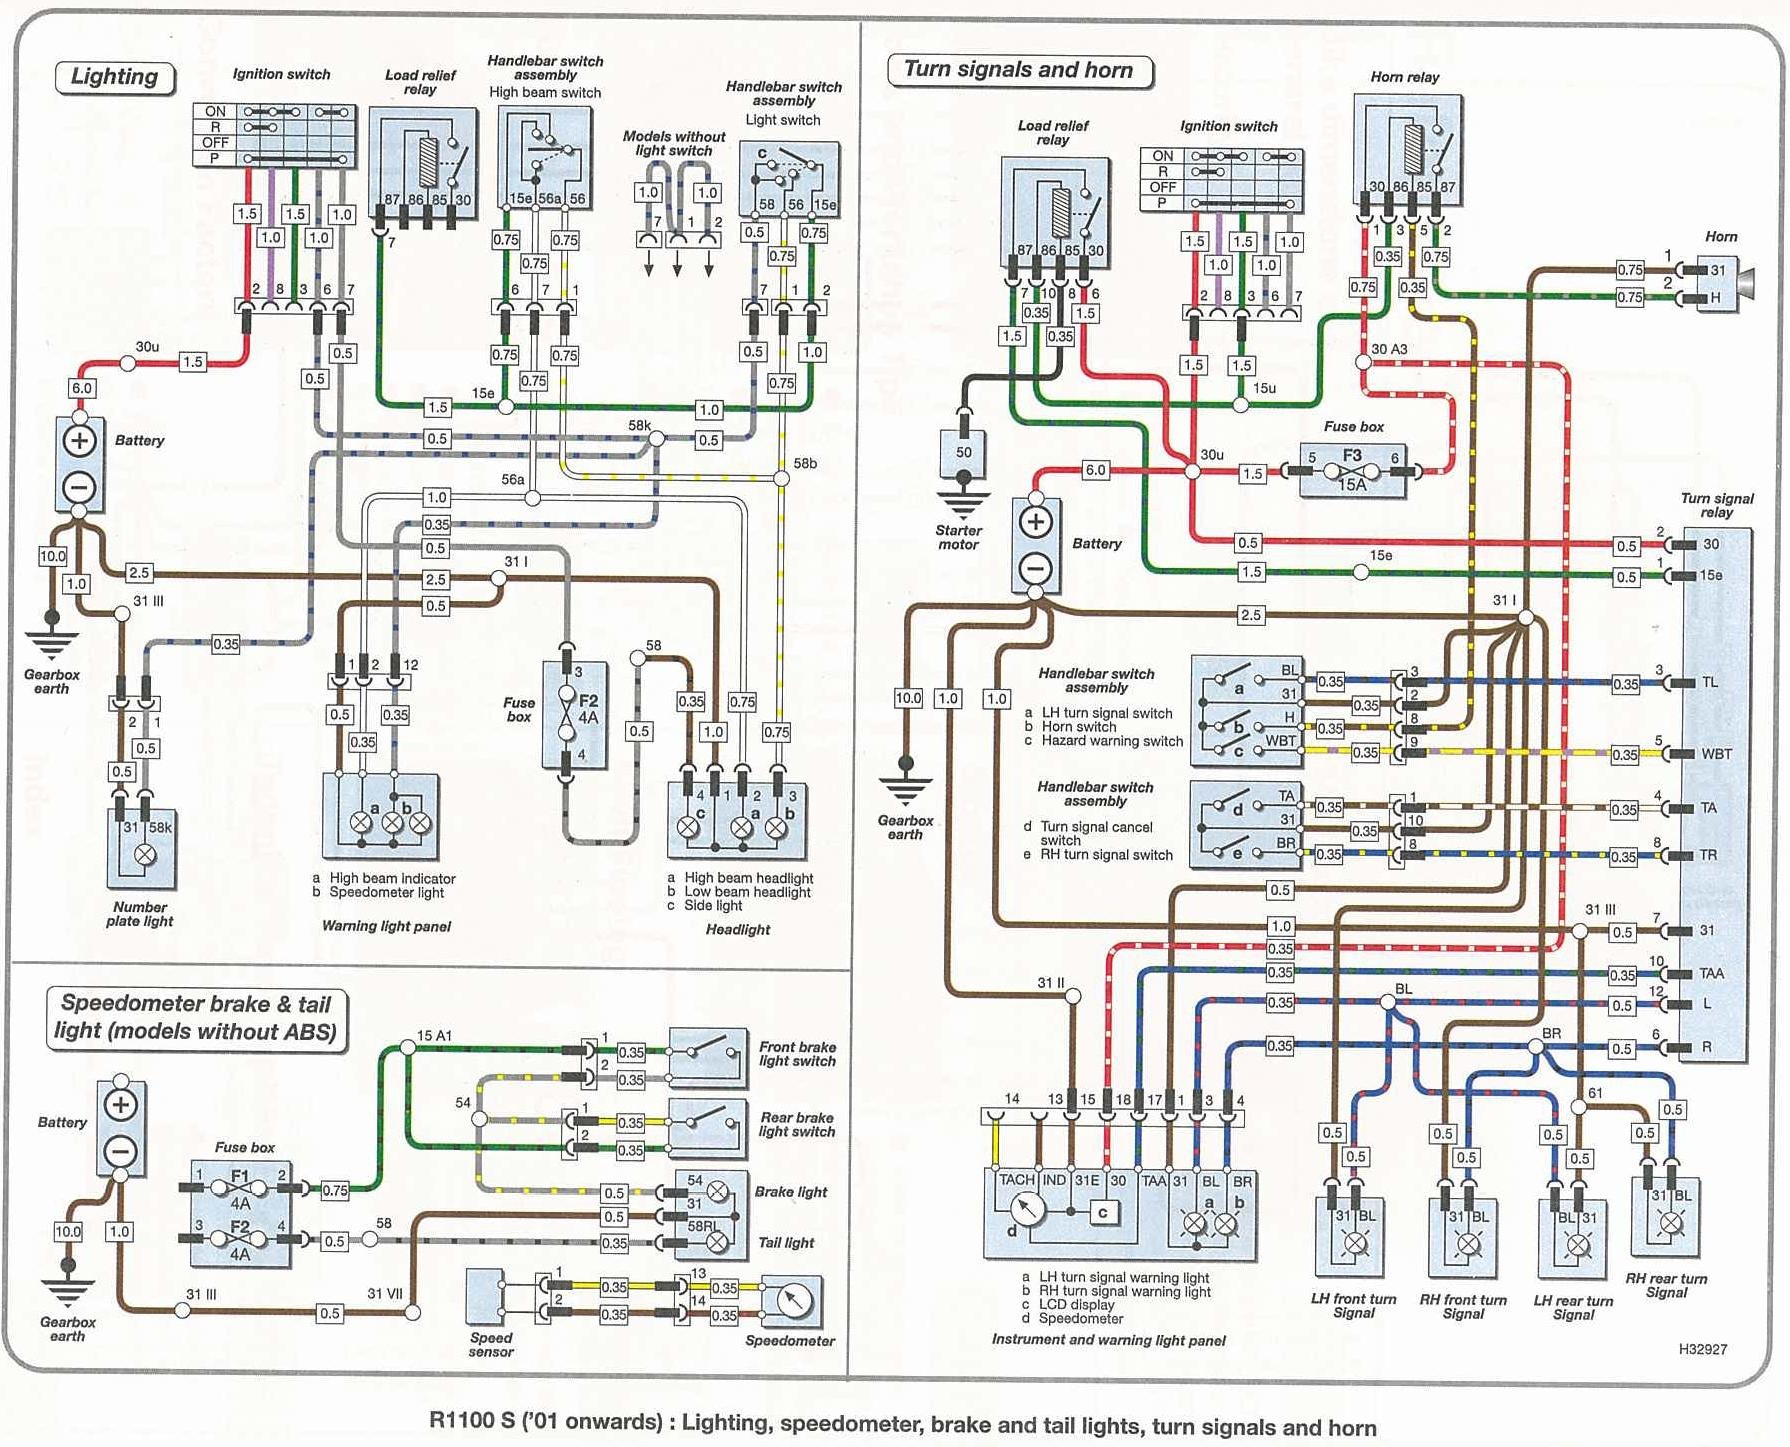 wiring06 100 [ wiring diagram e30 ] bmw e30 m50 swap instructions with  at soozxer.org